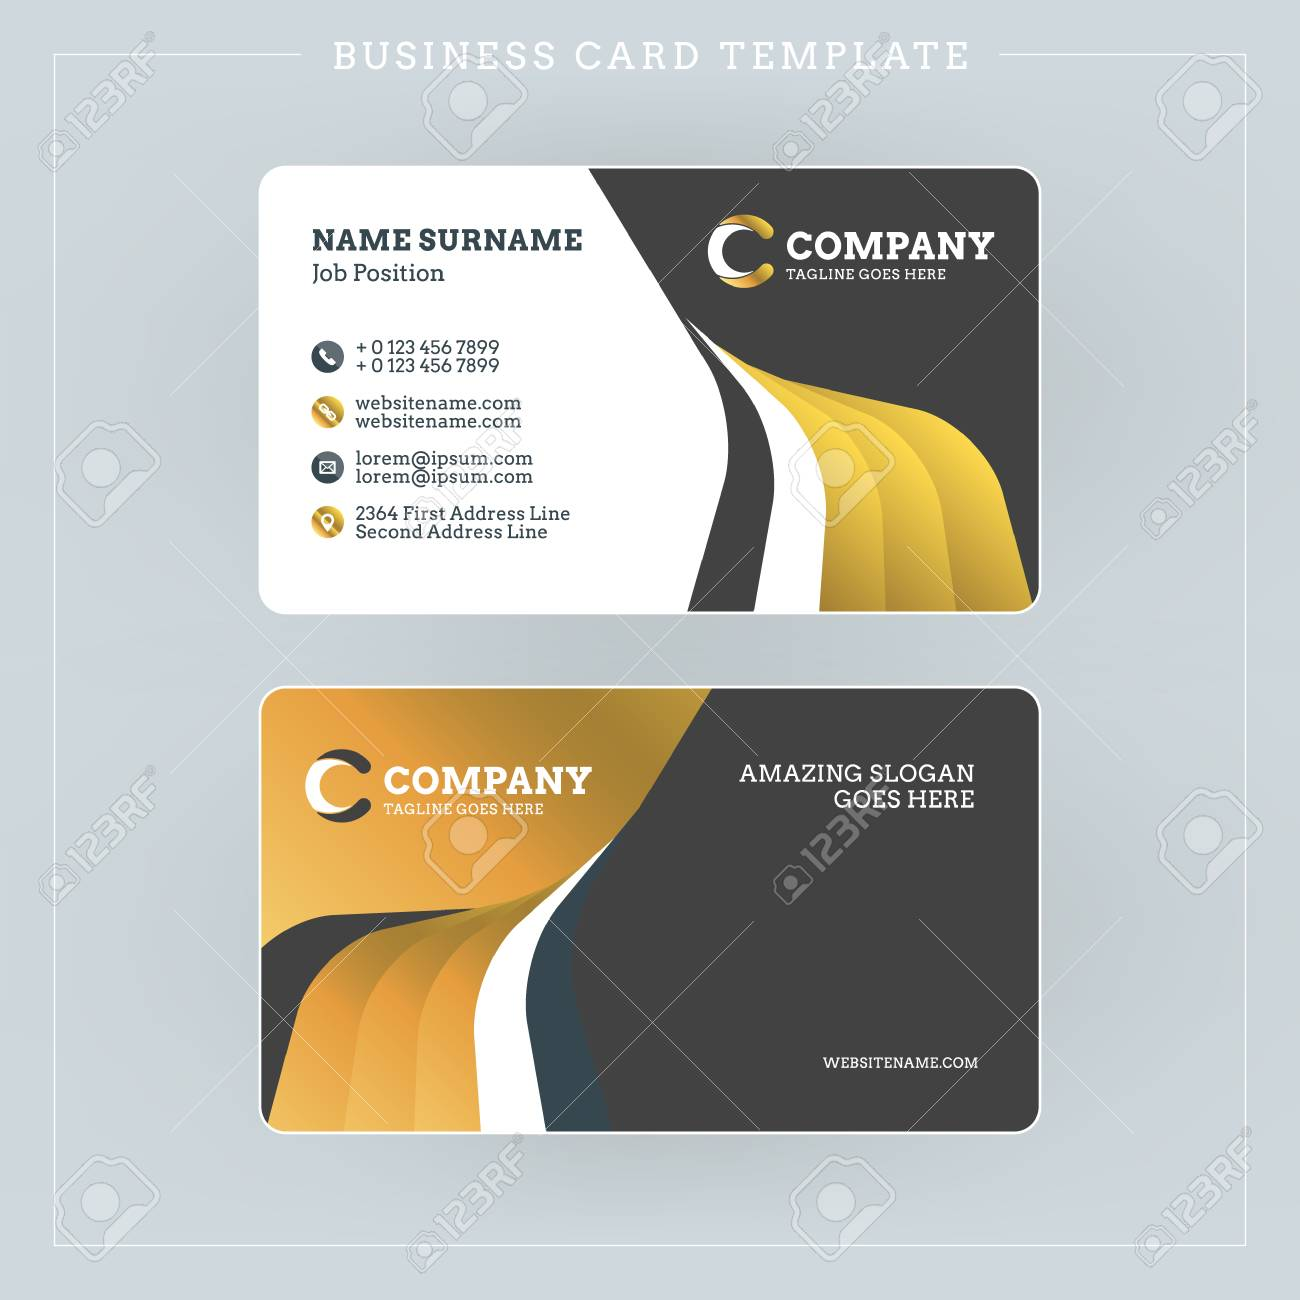 Doublesided Business Card Template With Abstract Golden And - Double sided business card template